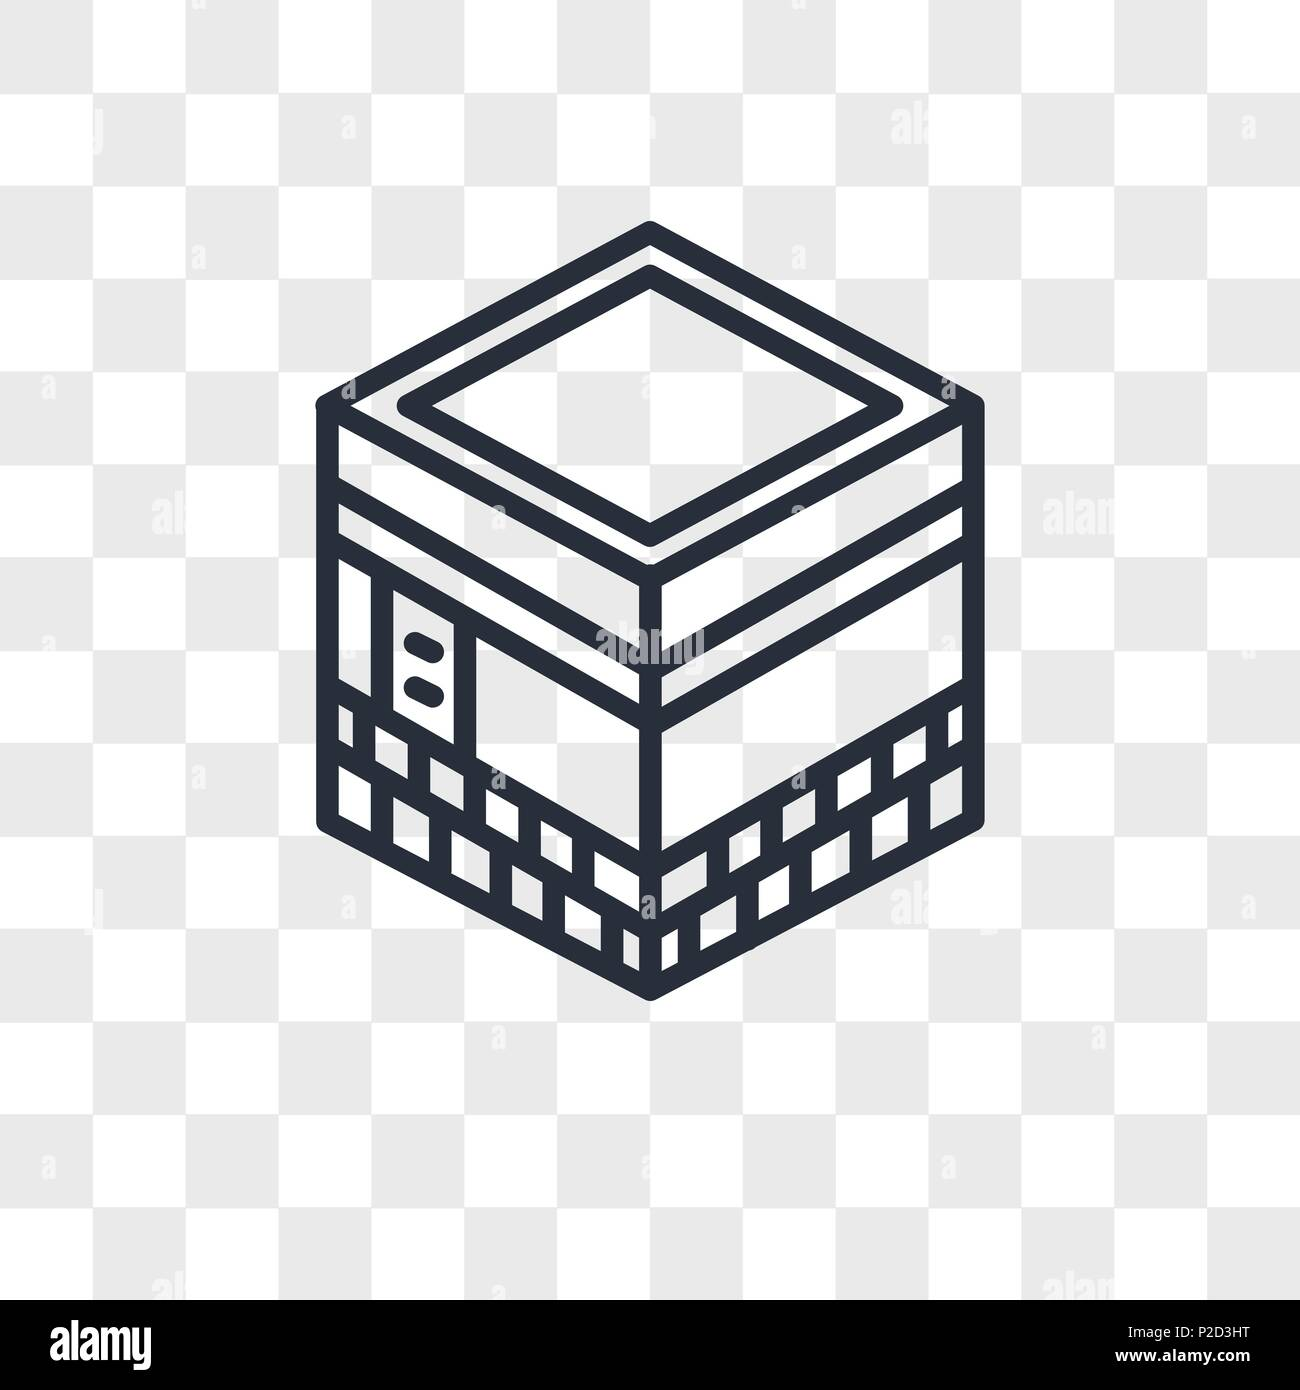 kaaba mecca vector icon isolated on transparent background kaaba mecca logo concept stock vector image art alamy https www alamy com kaaba mecca vector icon isolated on transparent background kaaba mecca logo concept image208041956 html